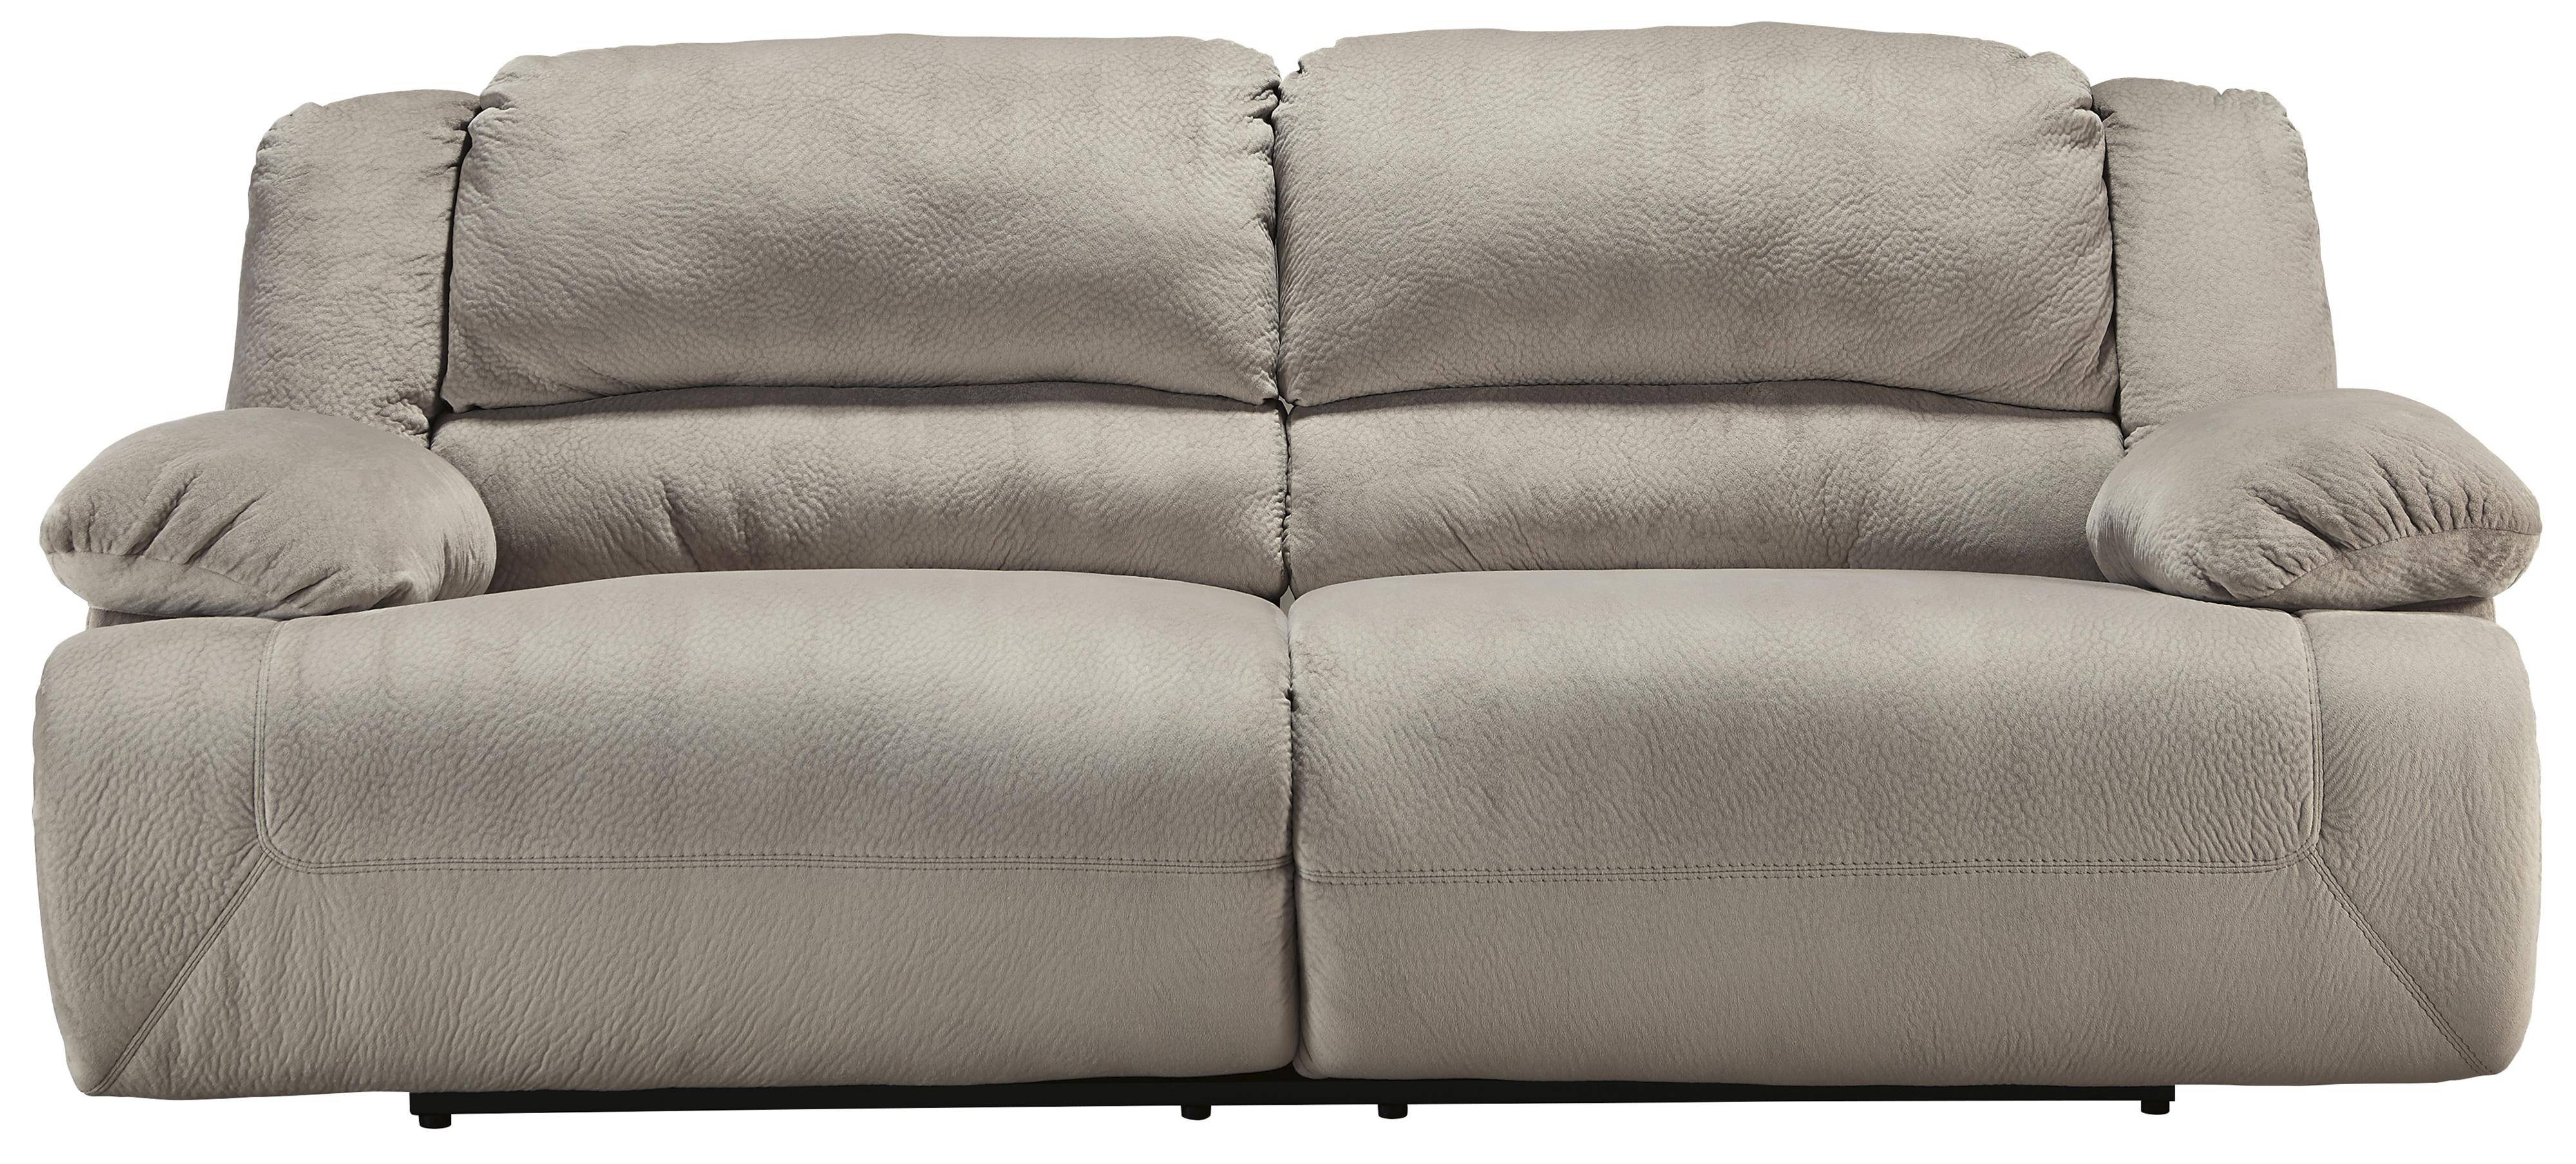 Signature Designashley Toletta - Granite Casual Contemporary 2 within 2 Seat Recliner Sofas (Image 16 of 30)